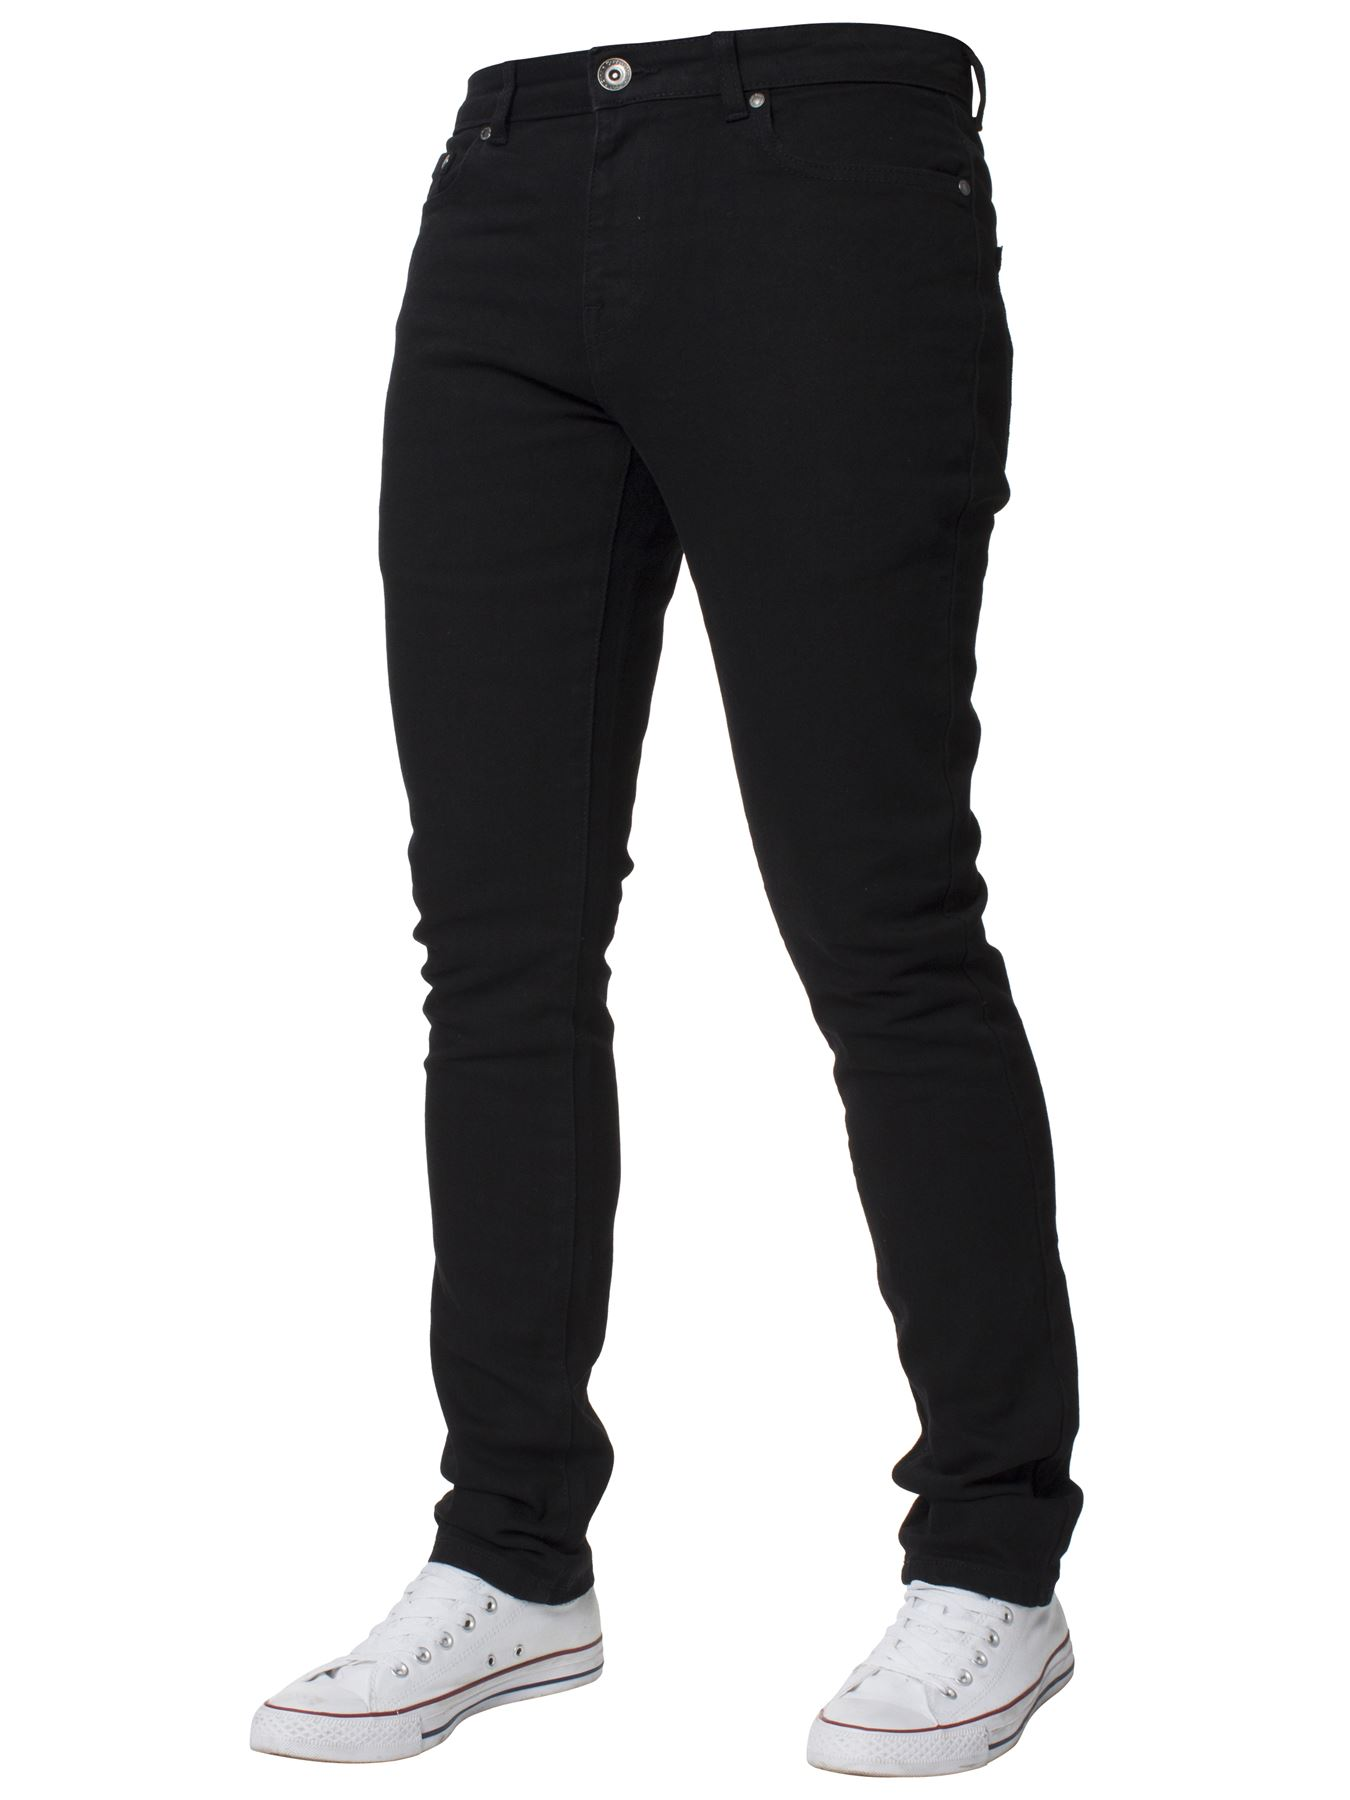 Kruze-Mens-Skinny-Stretch-Flex-Denim-Jeans-Slim-Fit-Trouser-Pants-Big-King-Sizes thumbnail 3